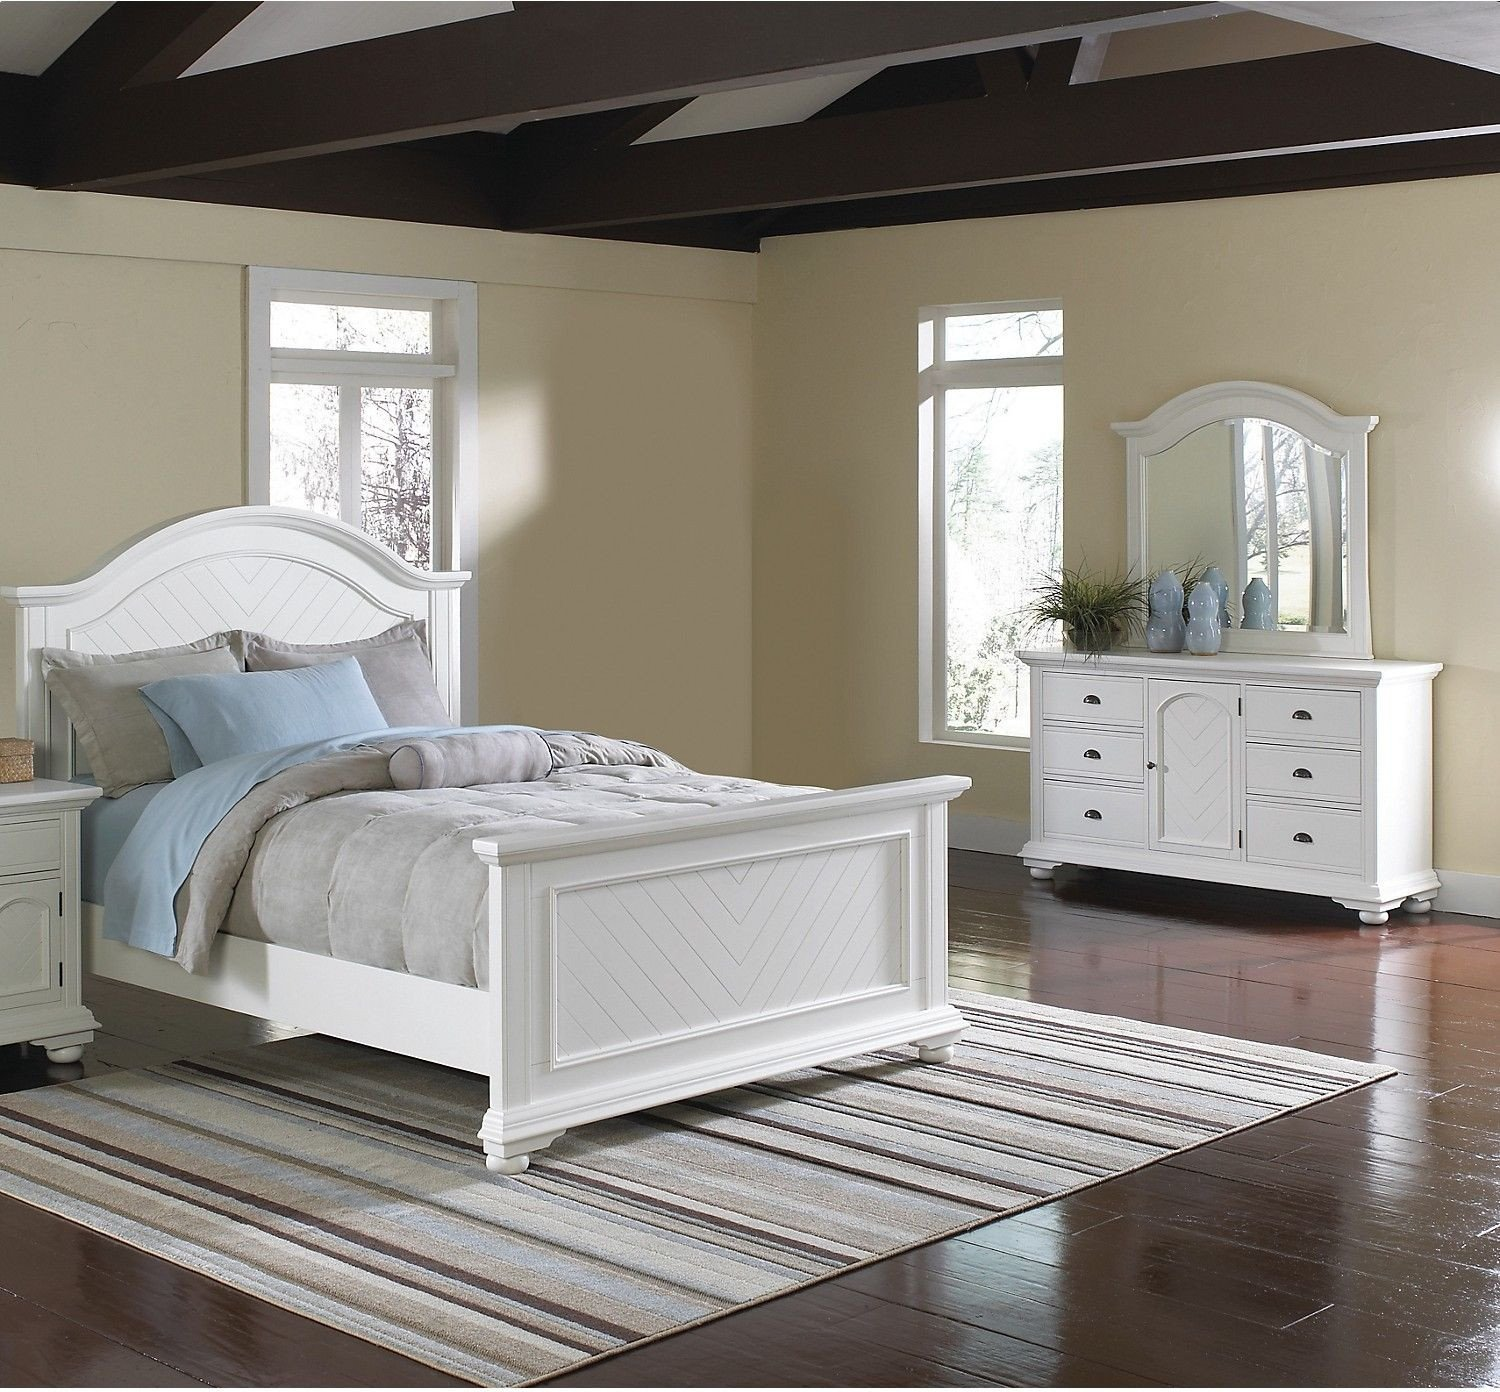 Queen Bedroom Set White Elegant Add A Fresh New Look to Your Home with This Brook Bedroom